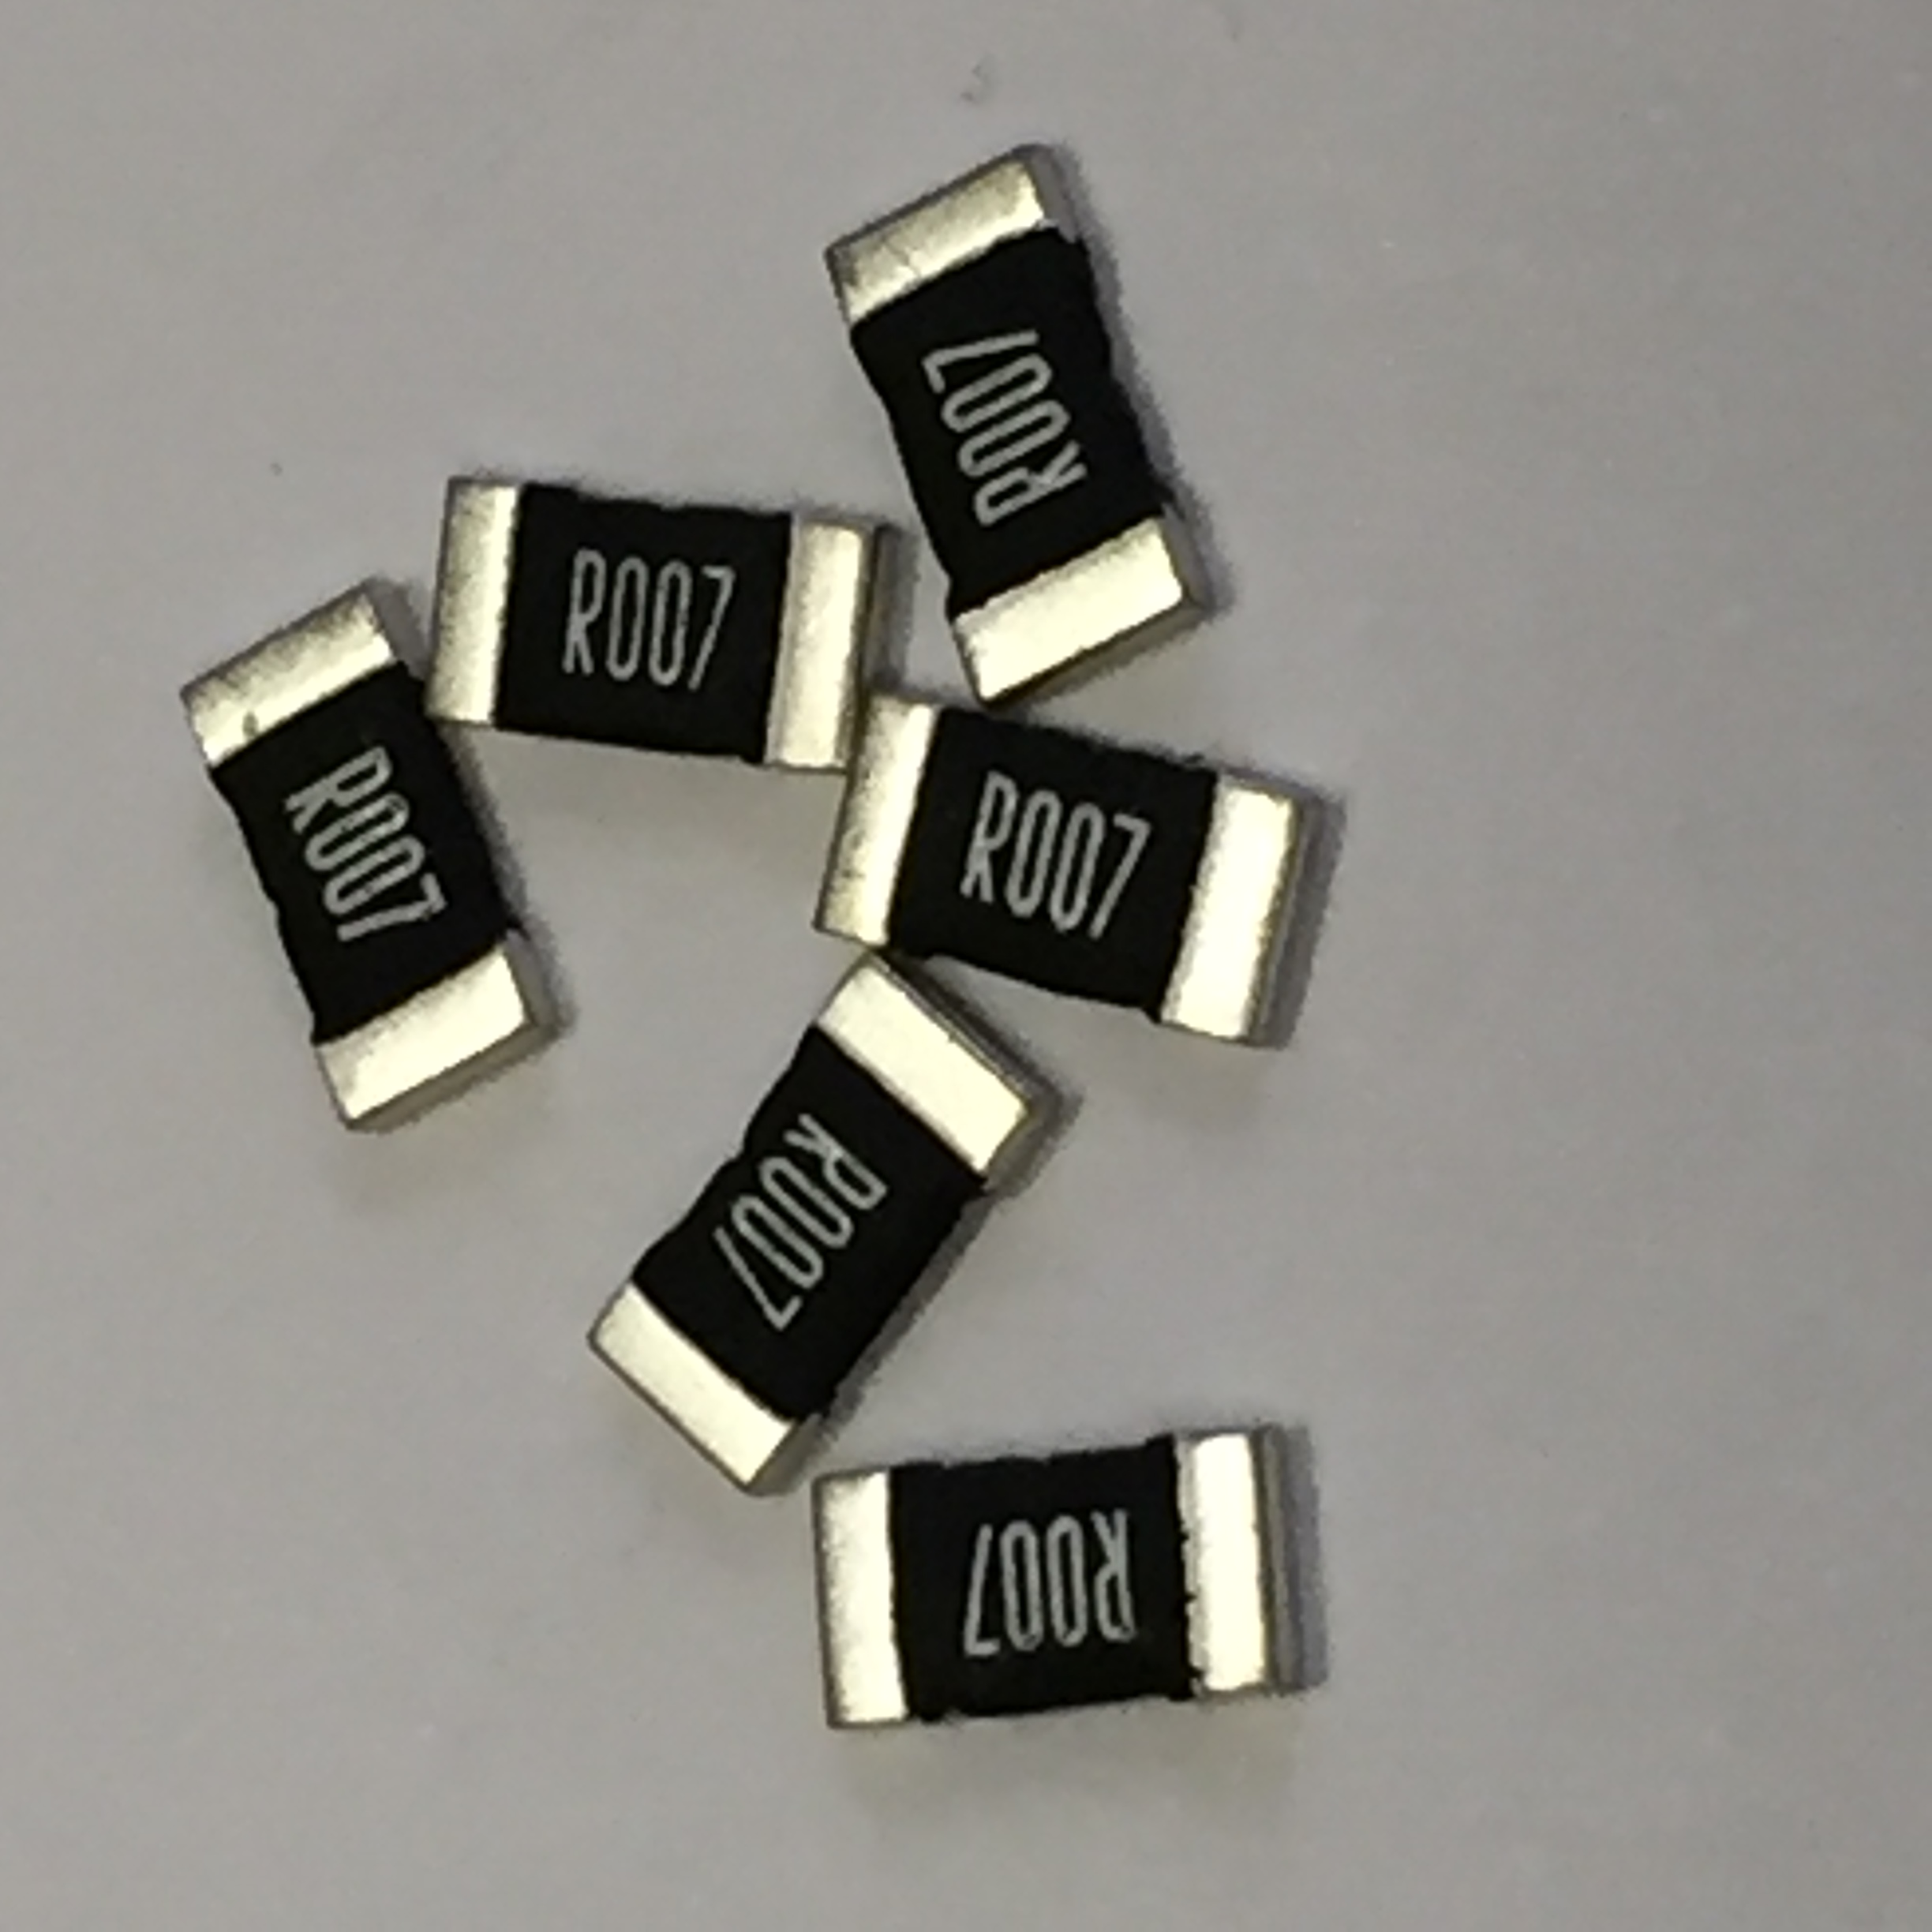 Current Sense Chips Offer Tolerances as Tight as 0.5%